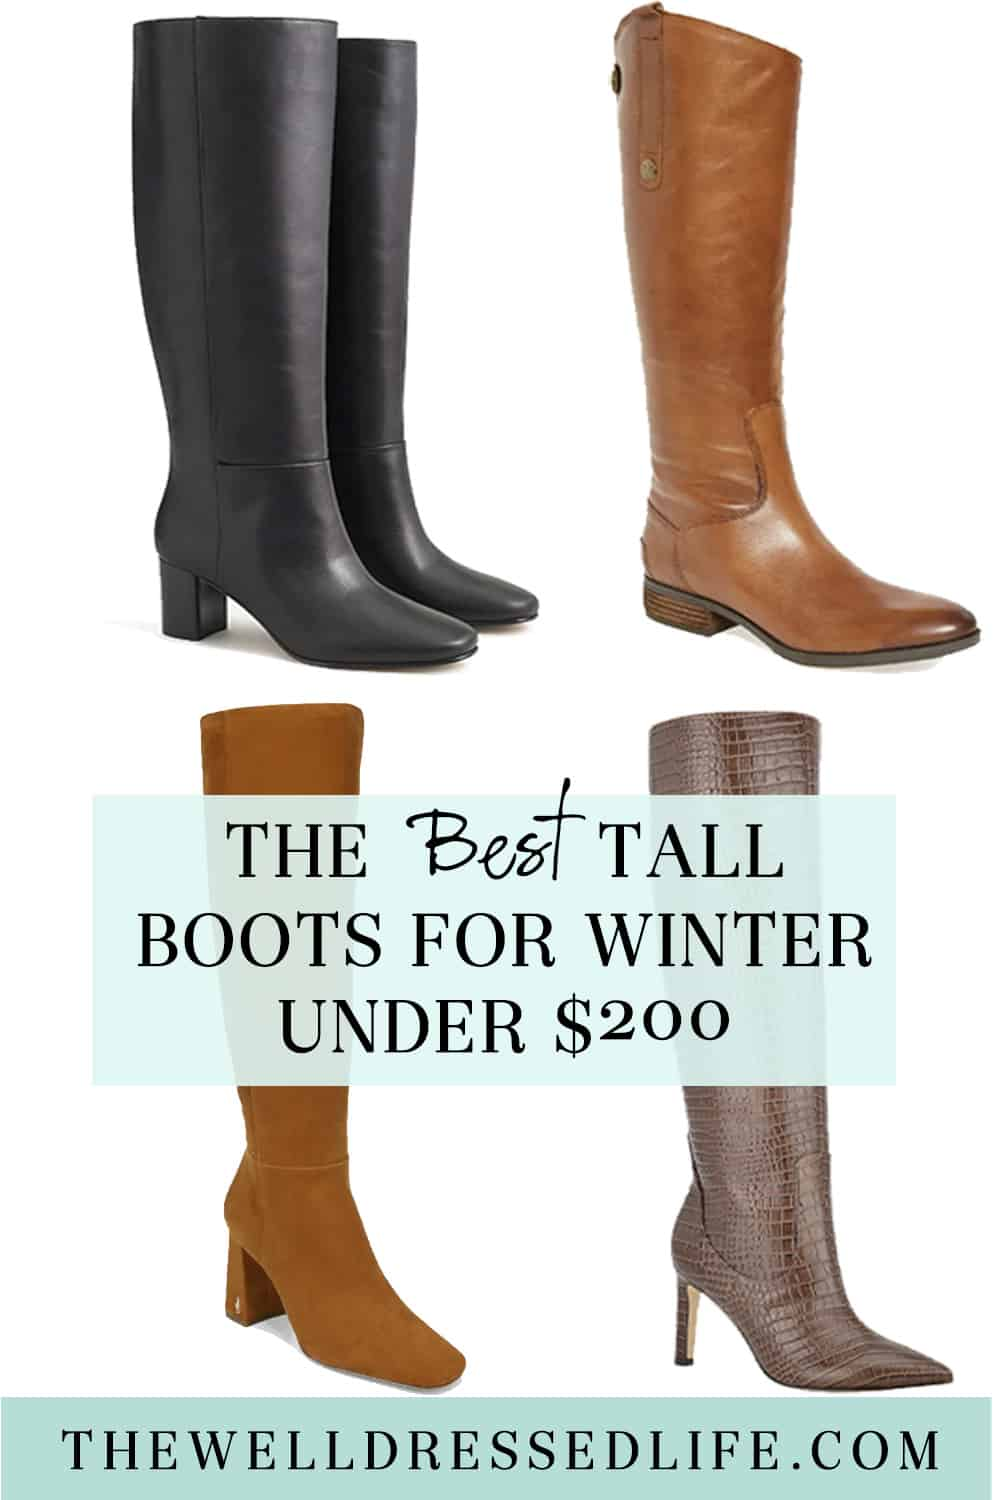 The Best Tall Boots Under $200